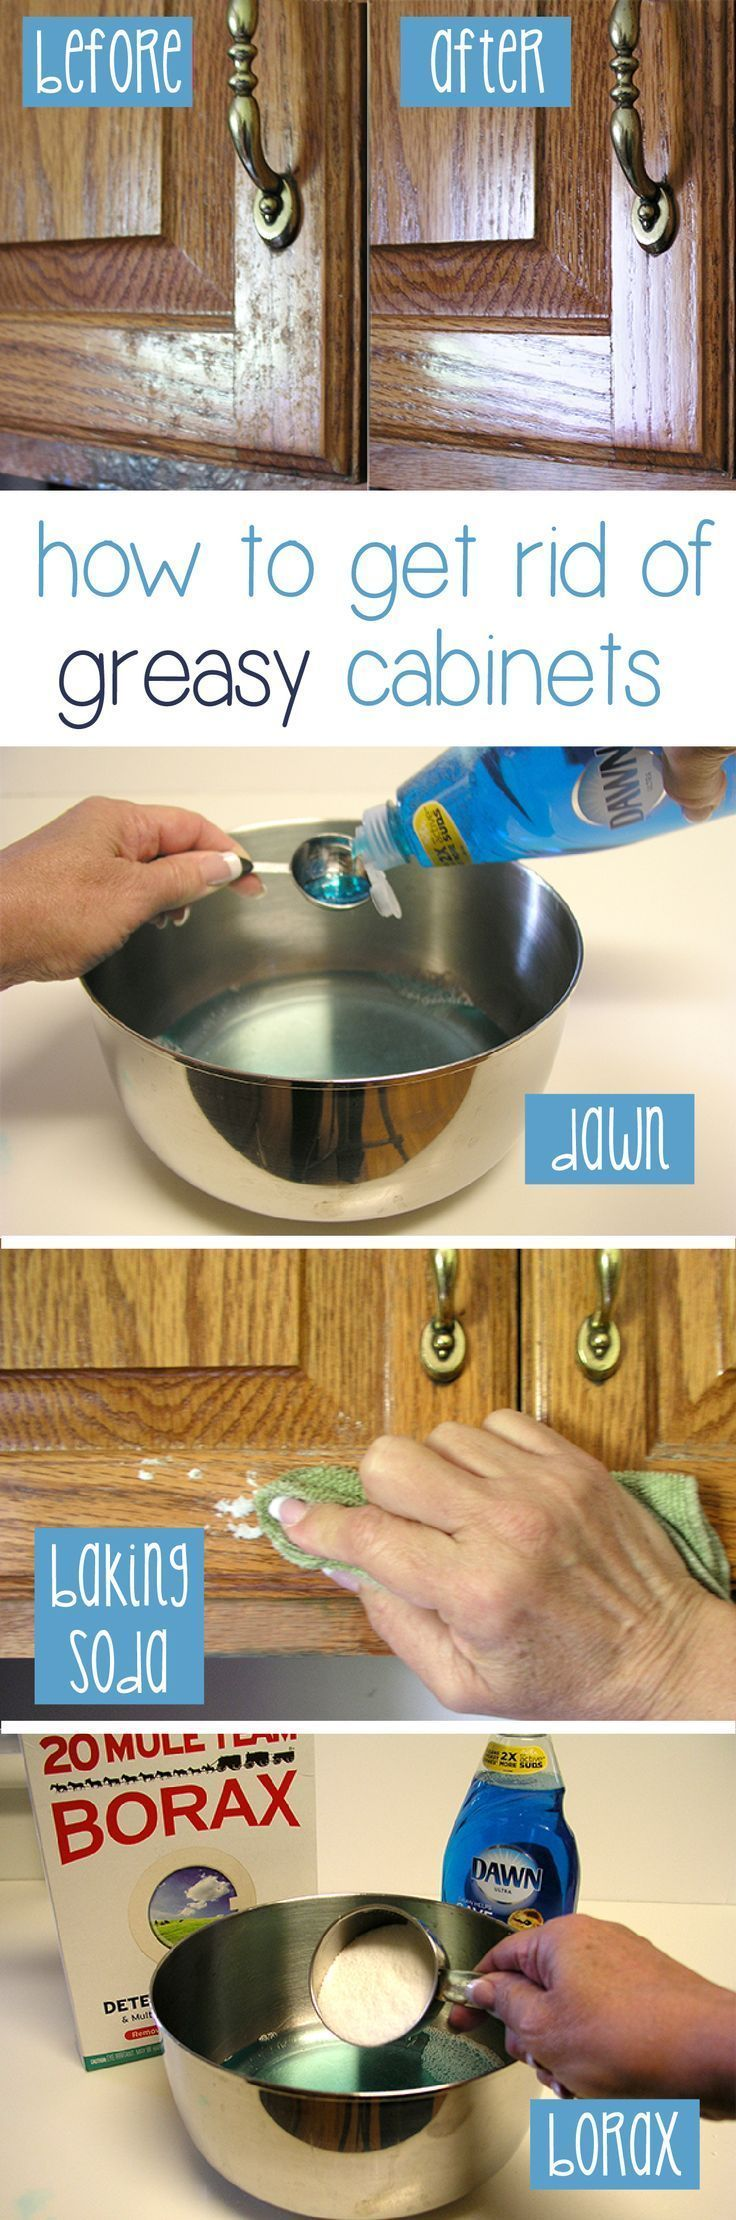 No More Greasy Cabinets! Here Are A Few Different Solutions That Can Help  You Get Your Kitchen Cabinets Squeaky Clean: Www.ehow.com/.